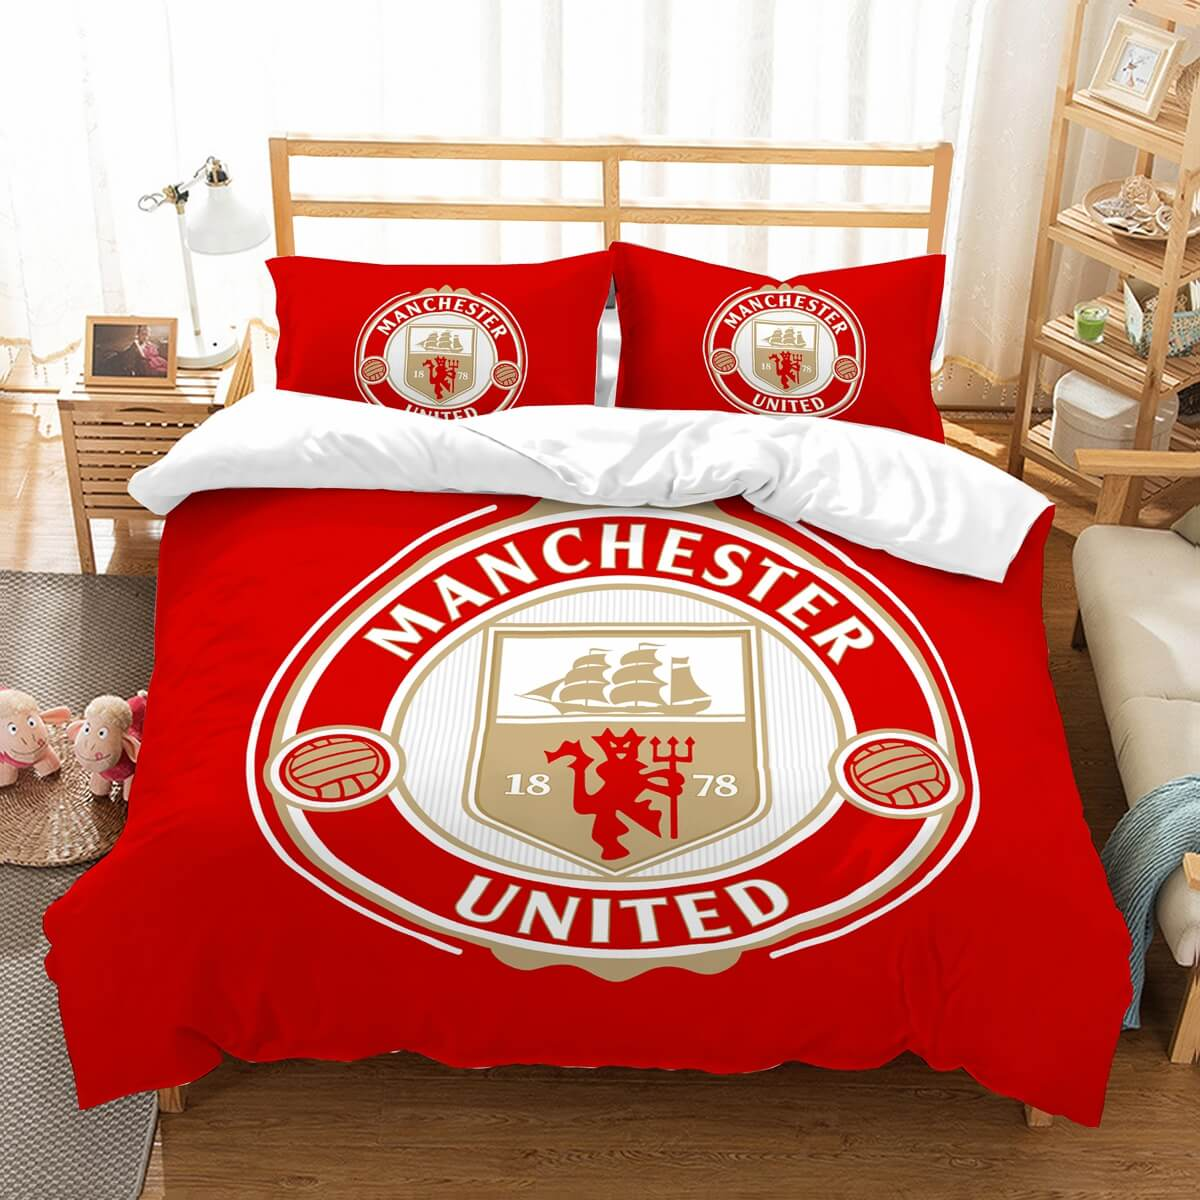 3D Customize Manchester United F.C. Bedding Set Duvet Cover Set Bedroom Set Bedlinen